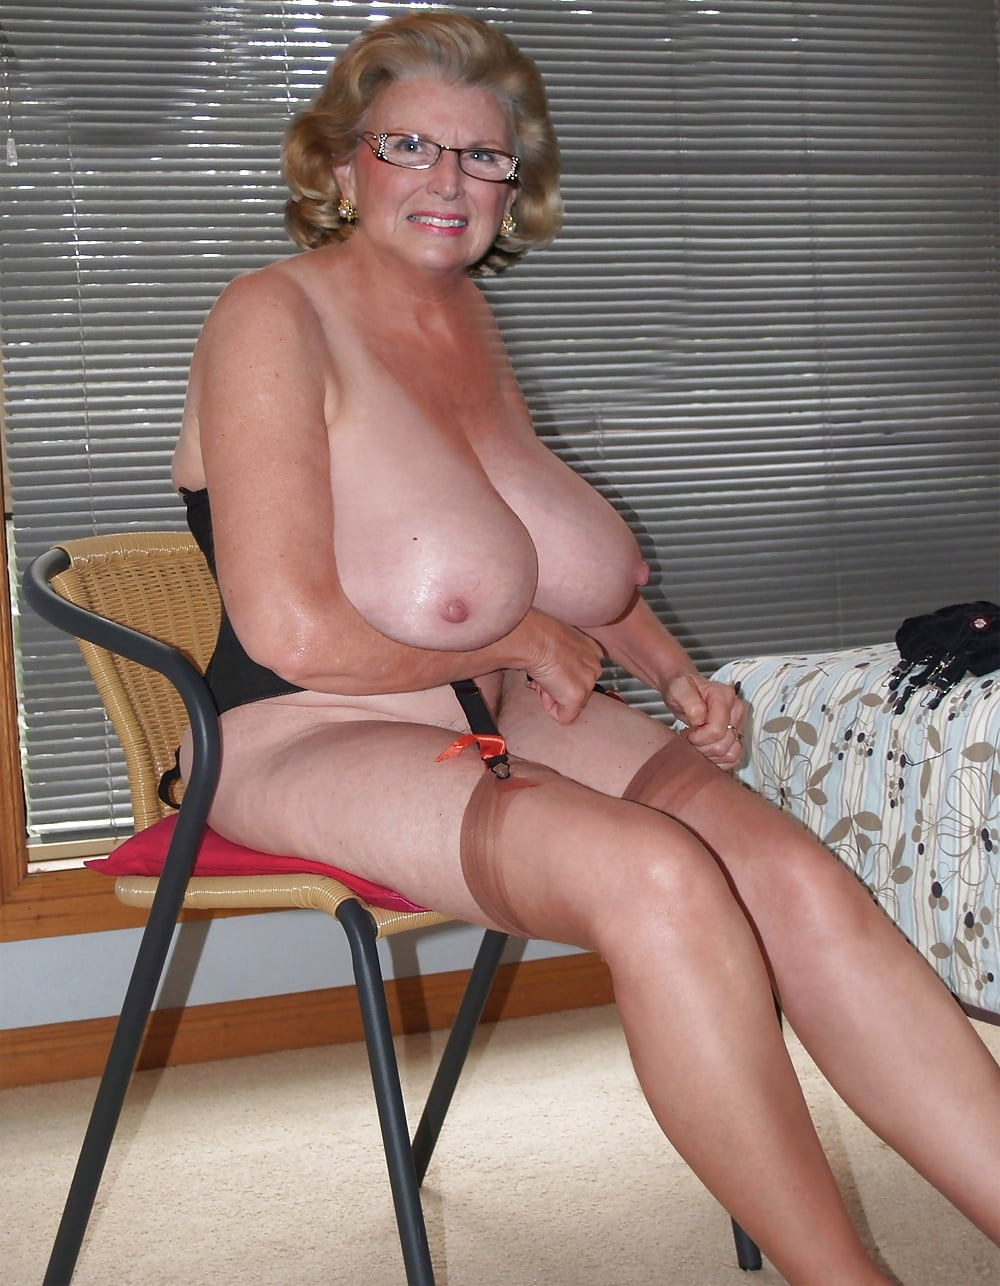 Grandmother with big breast nude, sleeping latina sex pics